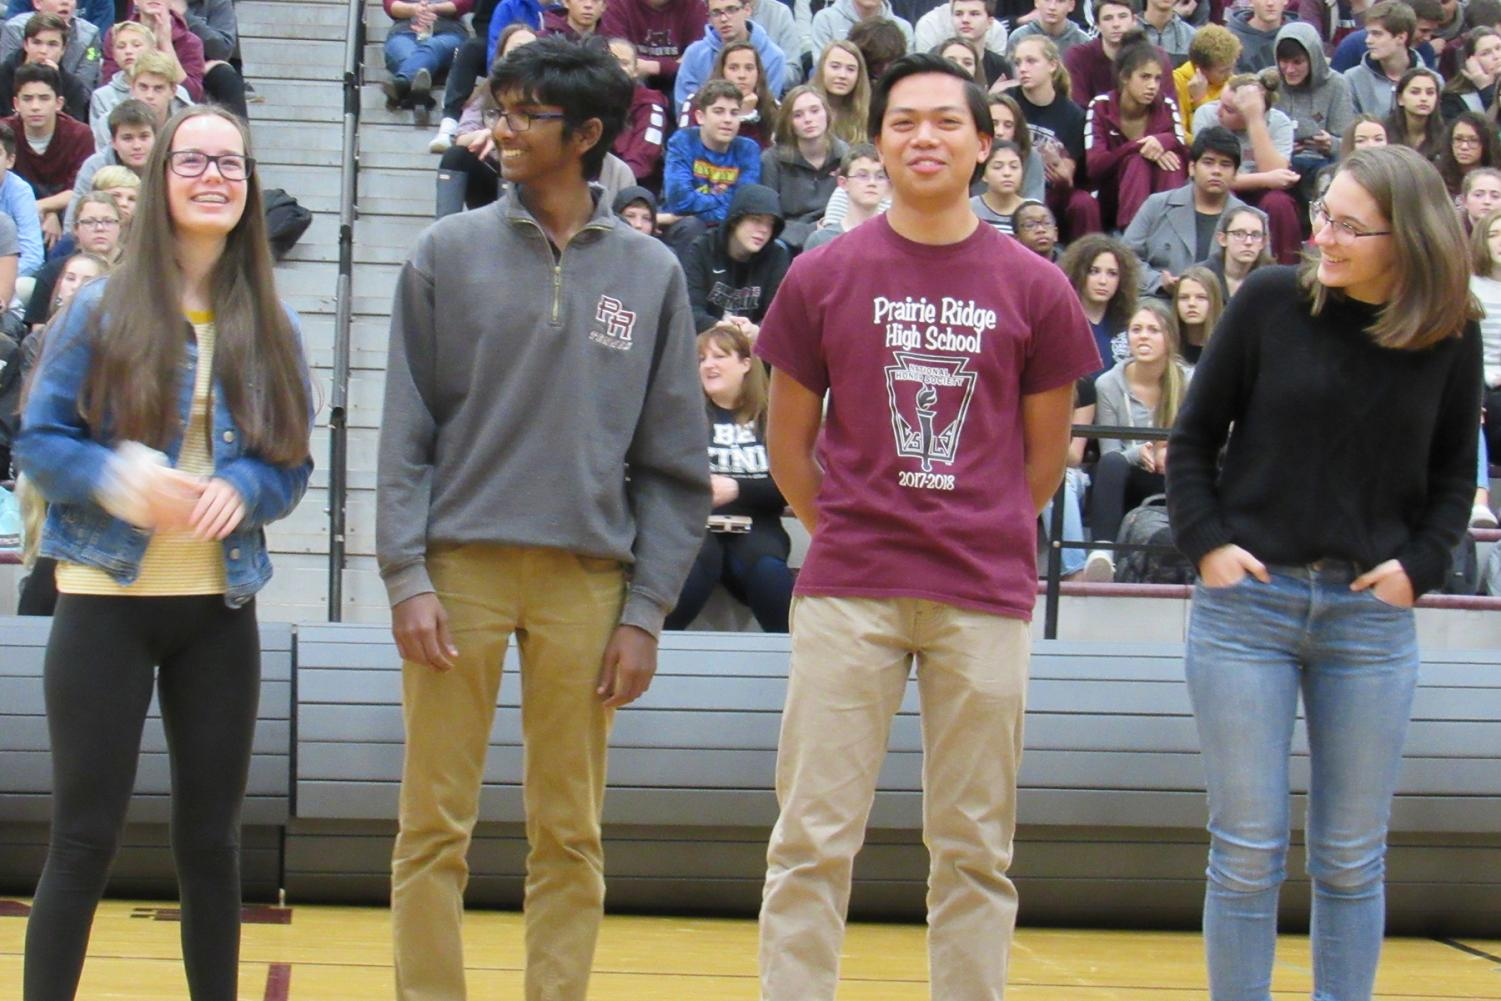 Members of the state champion Science Olympiad team smiled when they were recognized during the assembly on Friday, November 30, 2018.